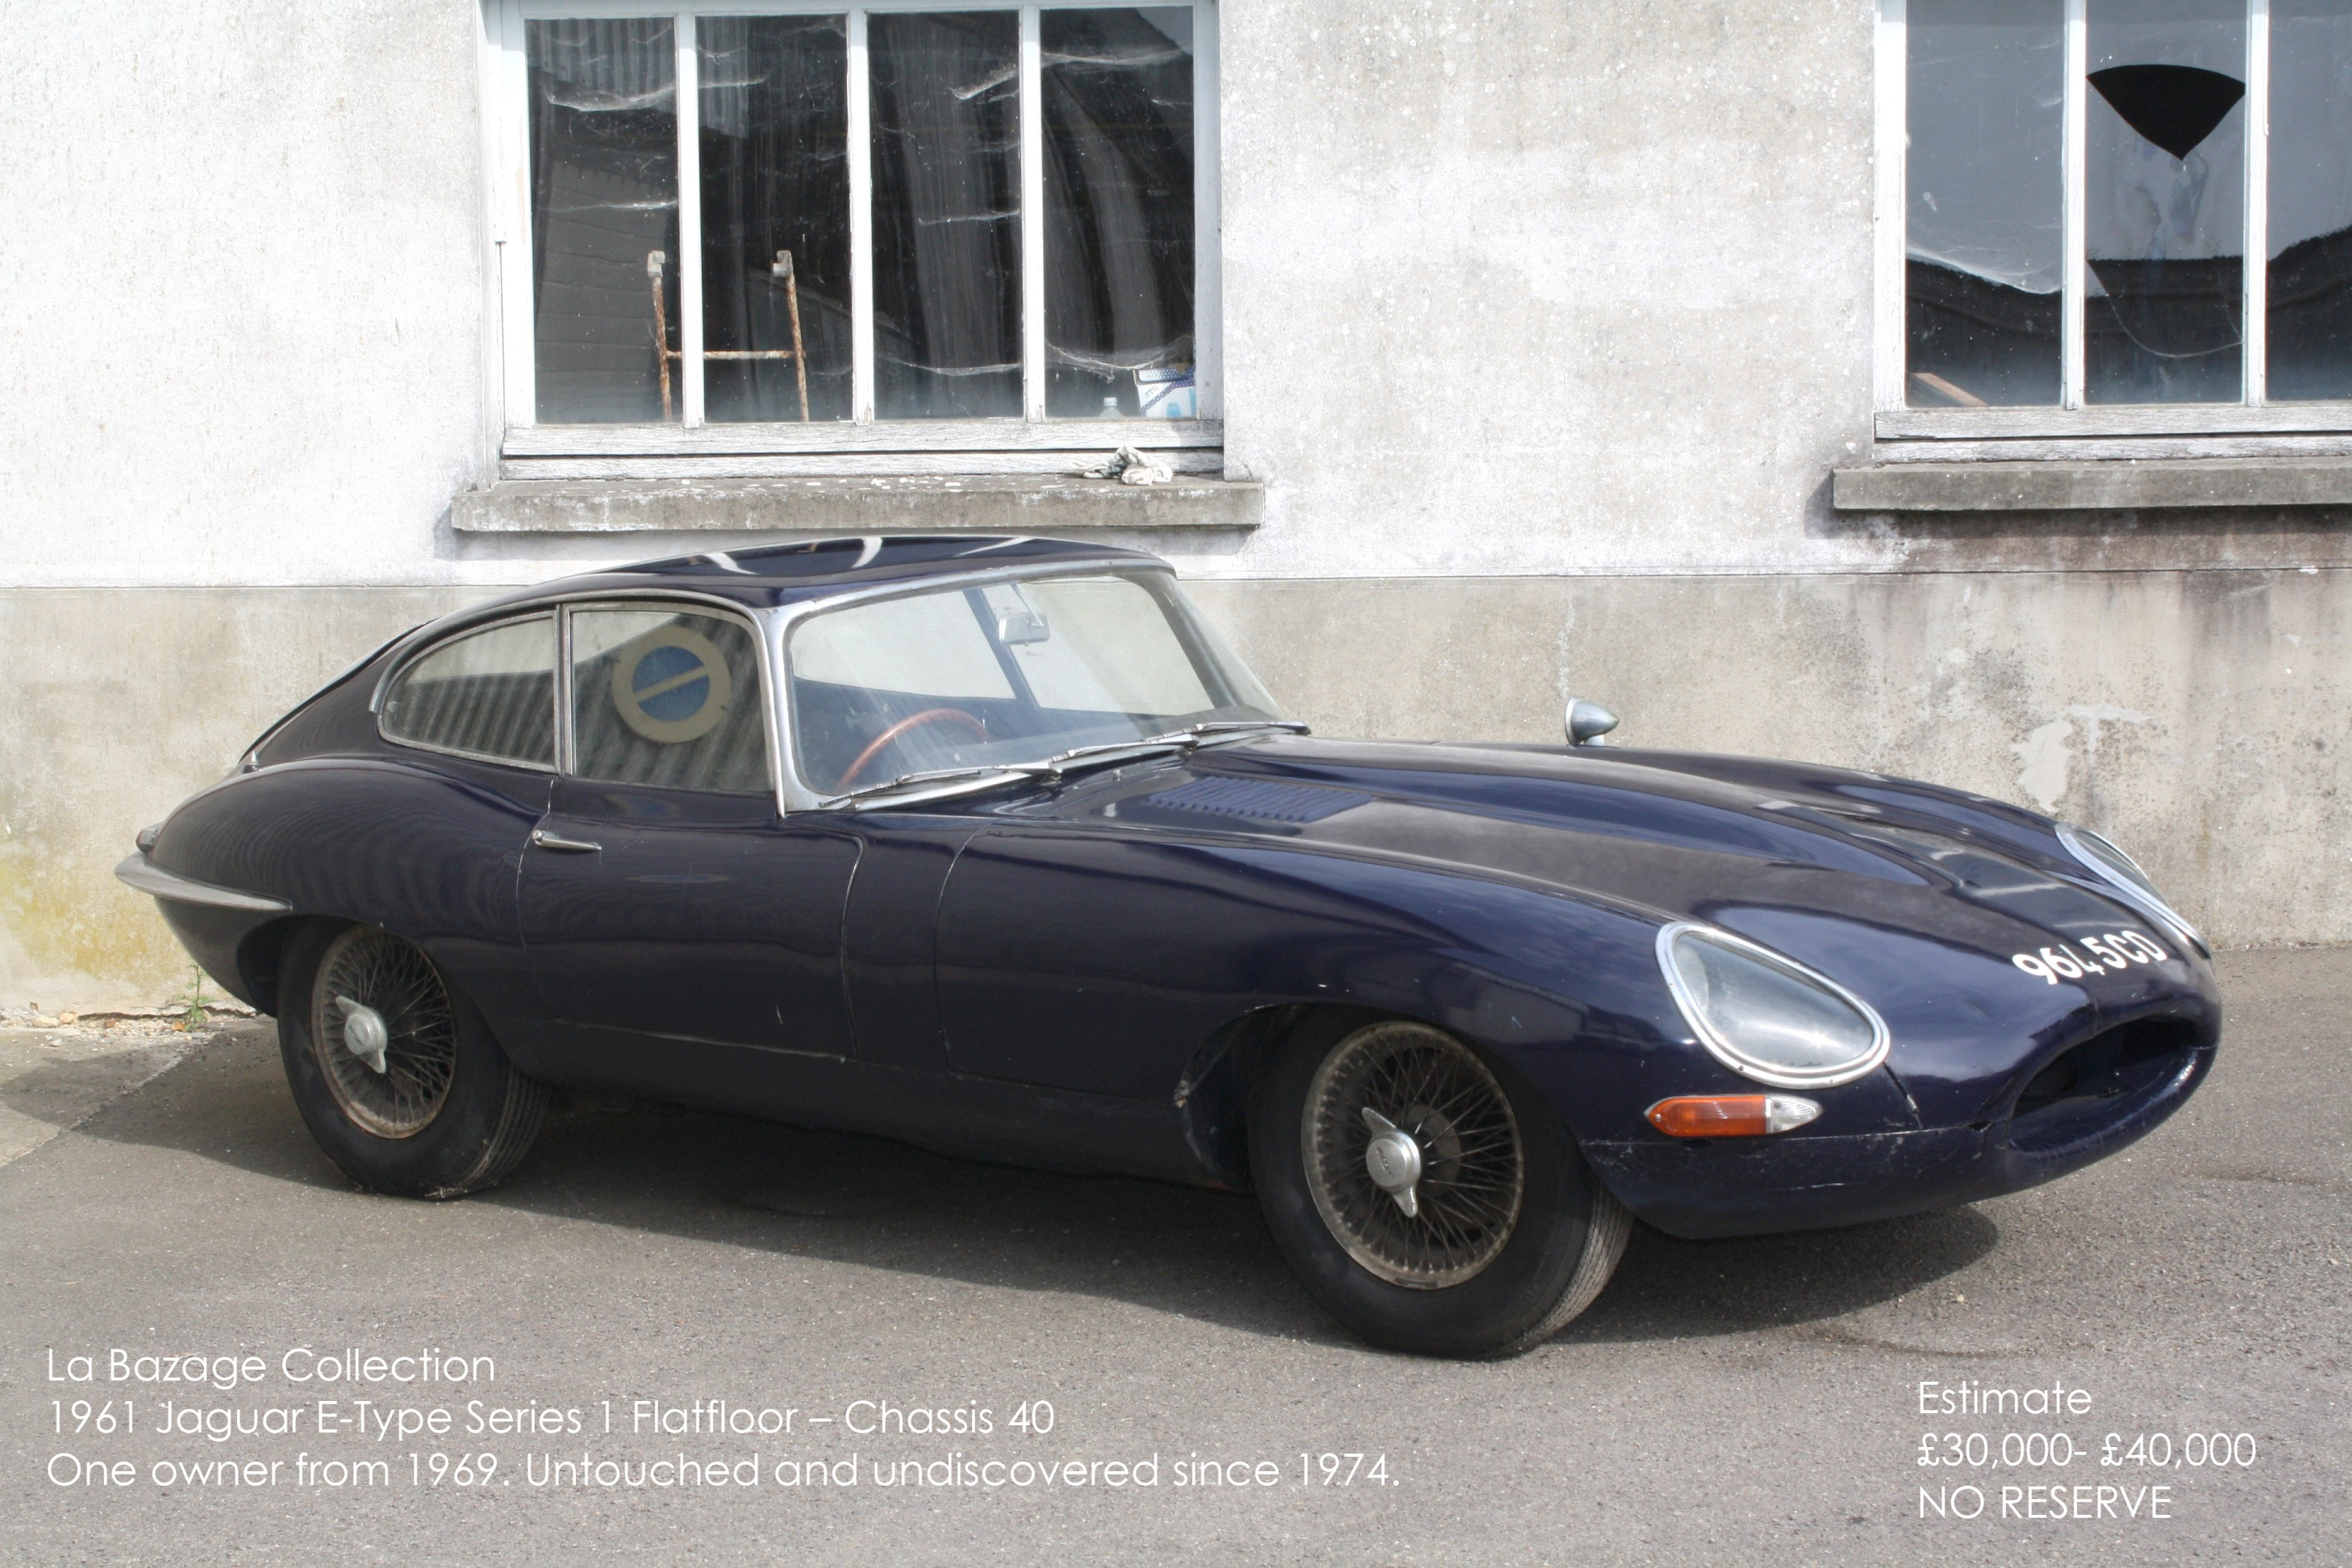 Barn Find Jaguar Xk E Reigns At British Auction further What Happened To Dc  ics further Town car h approval big block 1975 together with Restoration 161211 furthermore 1967 Jaguar Xke 4 2 E Type Series 1 Roadster Ots Barn Find Project Car. on jaguar e type barn find